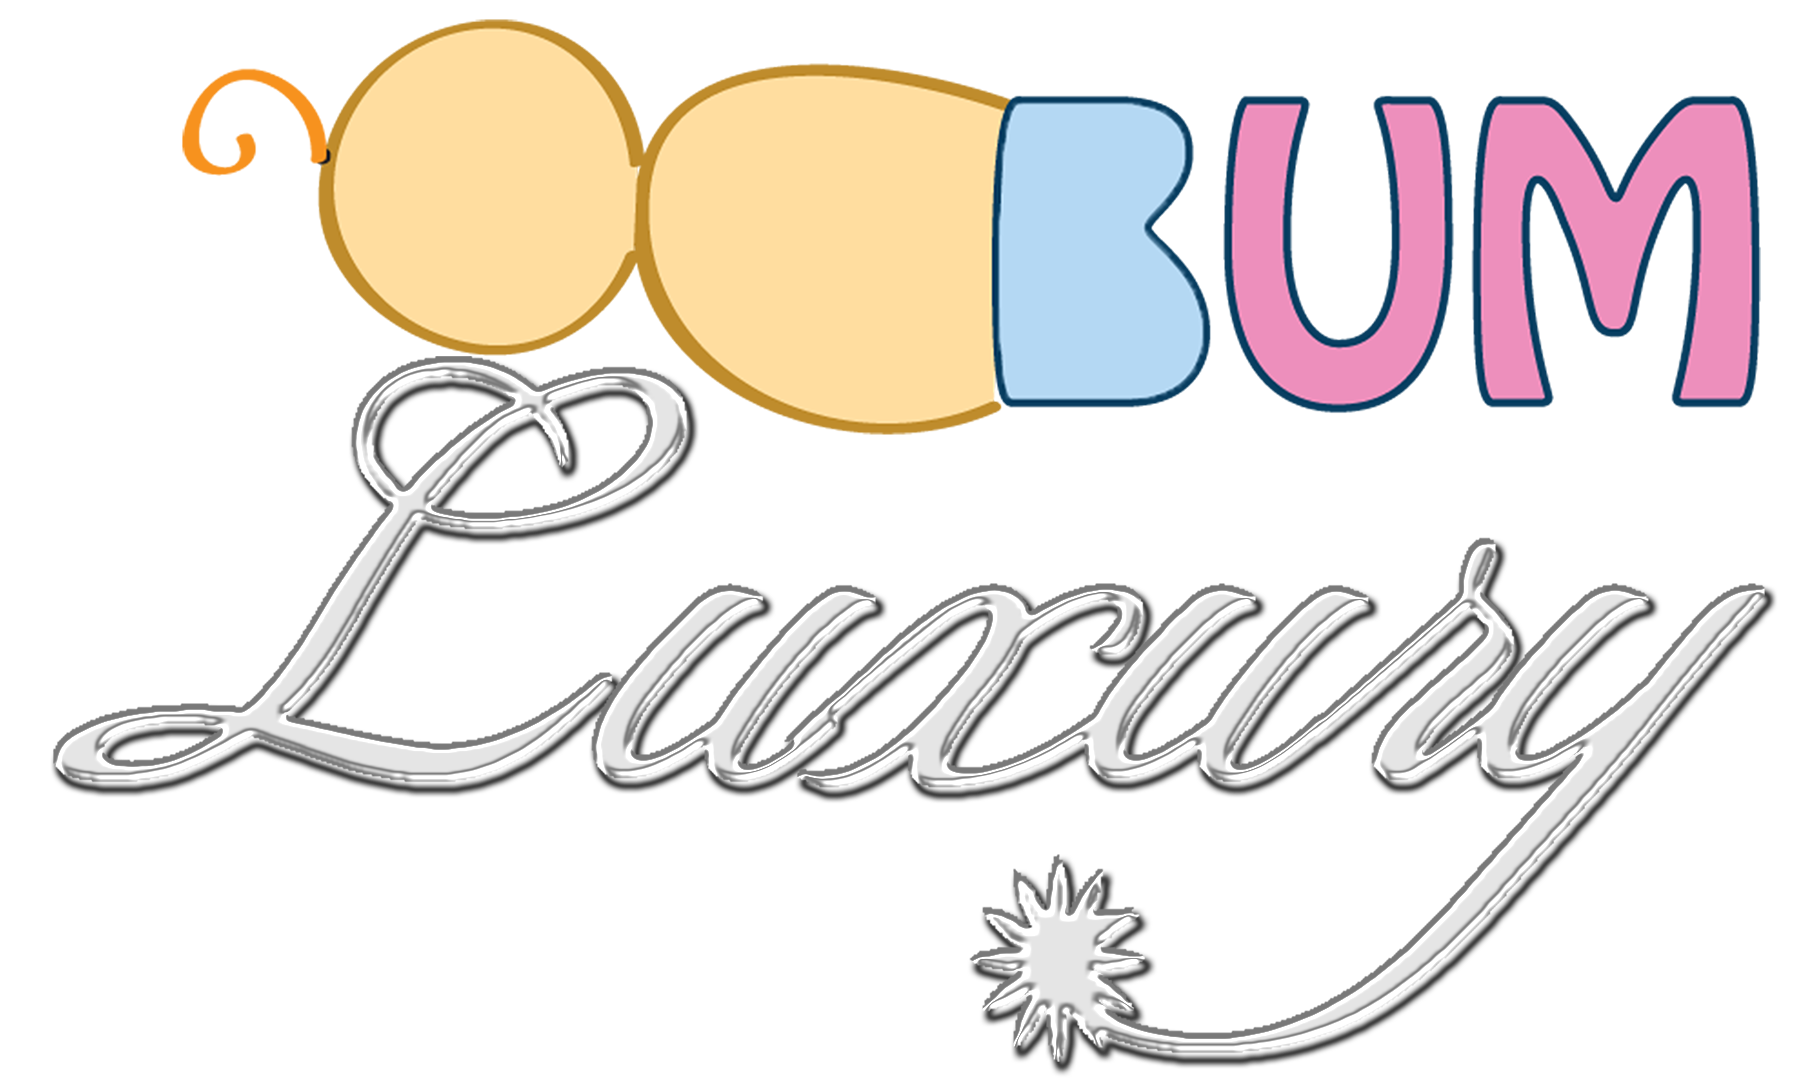 bum luxury logo